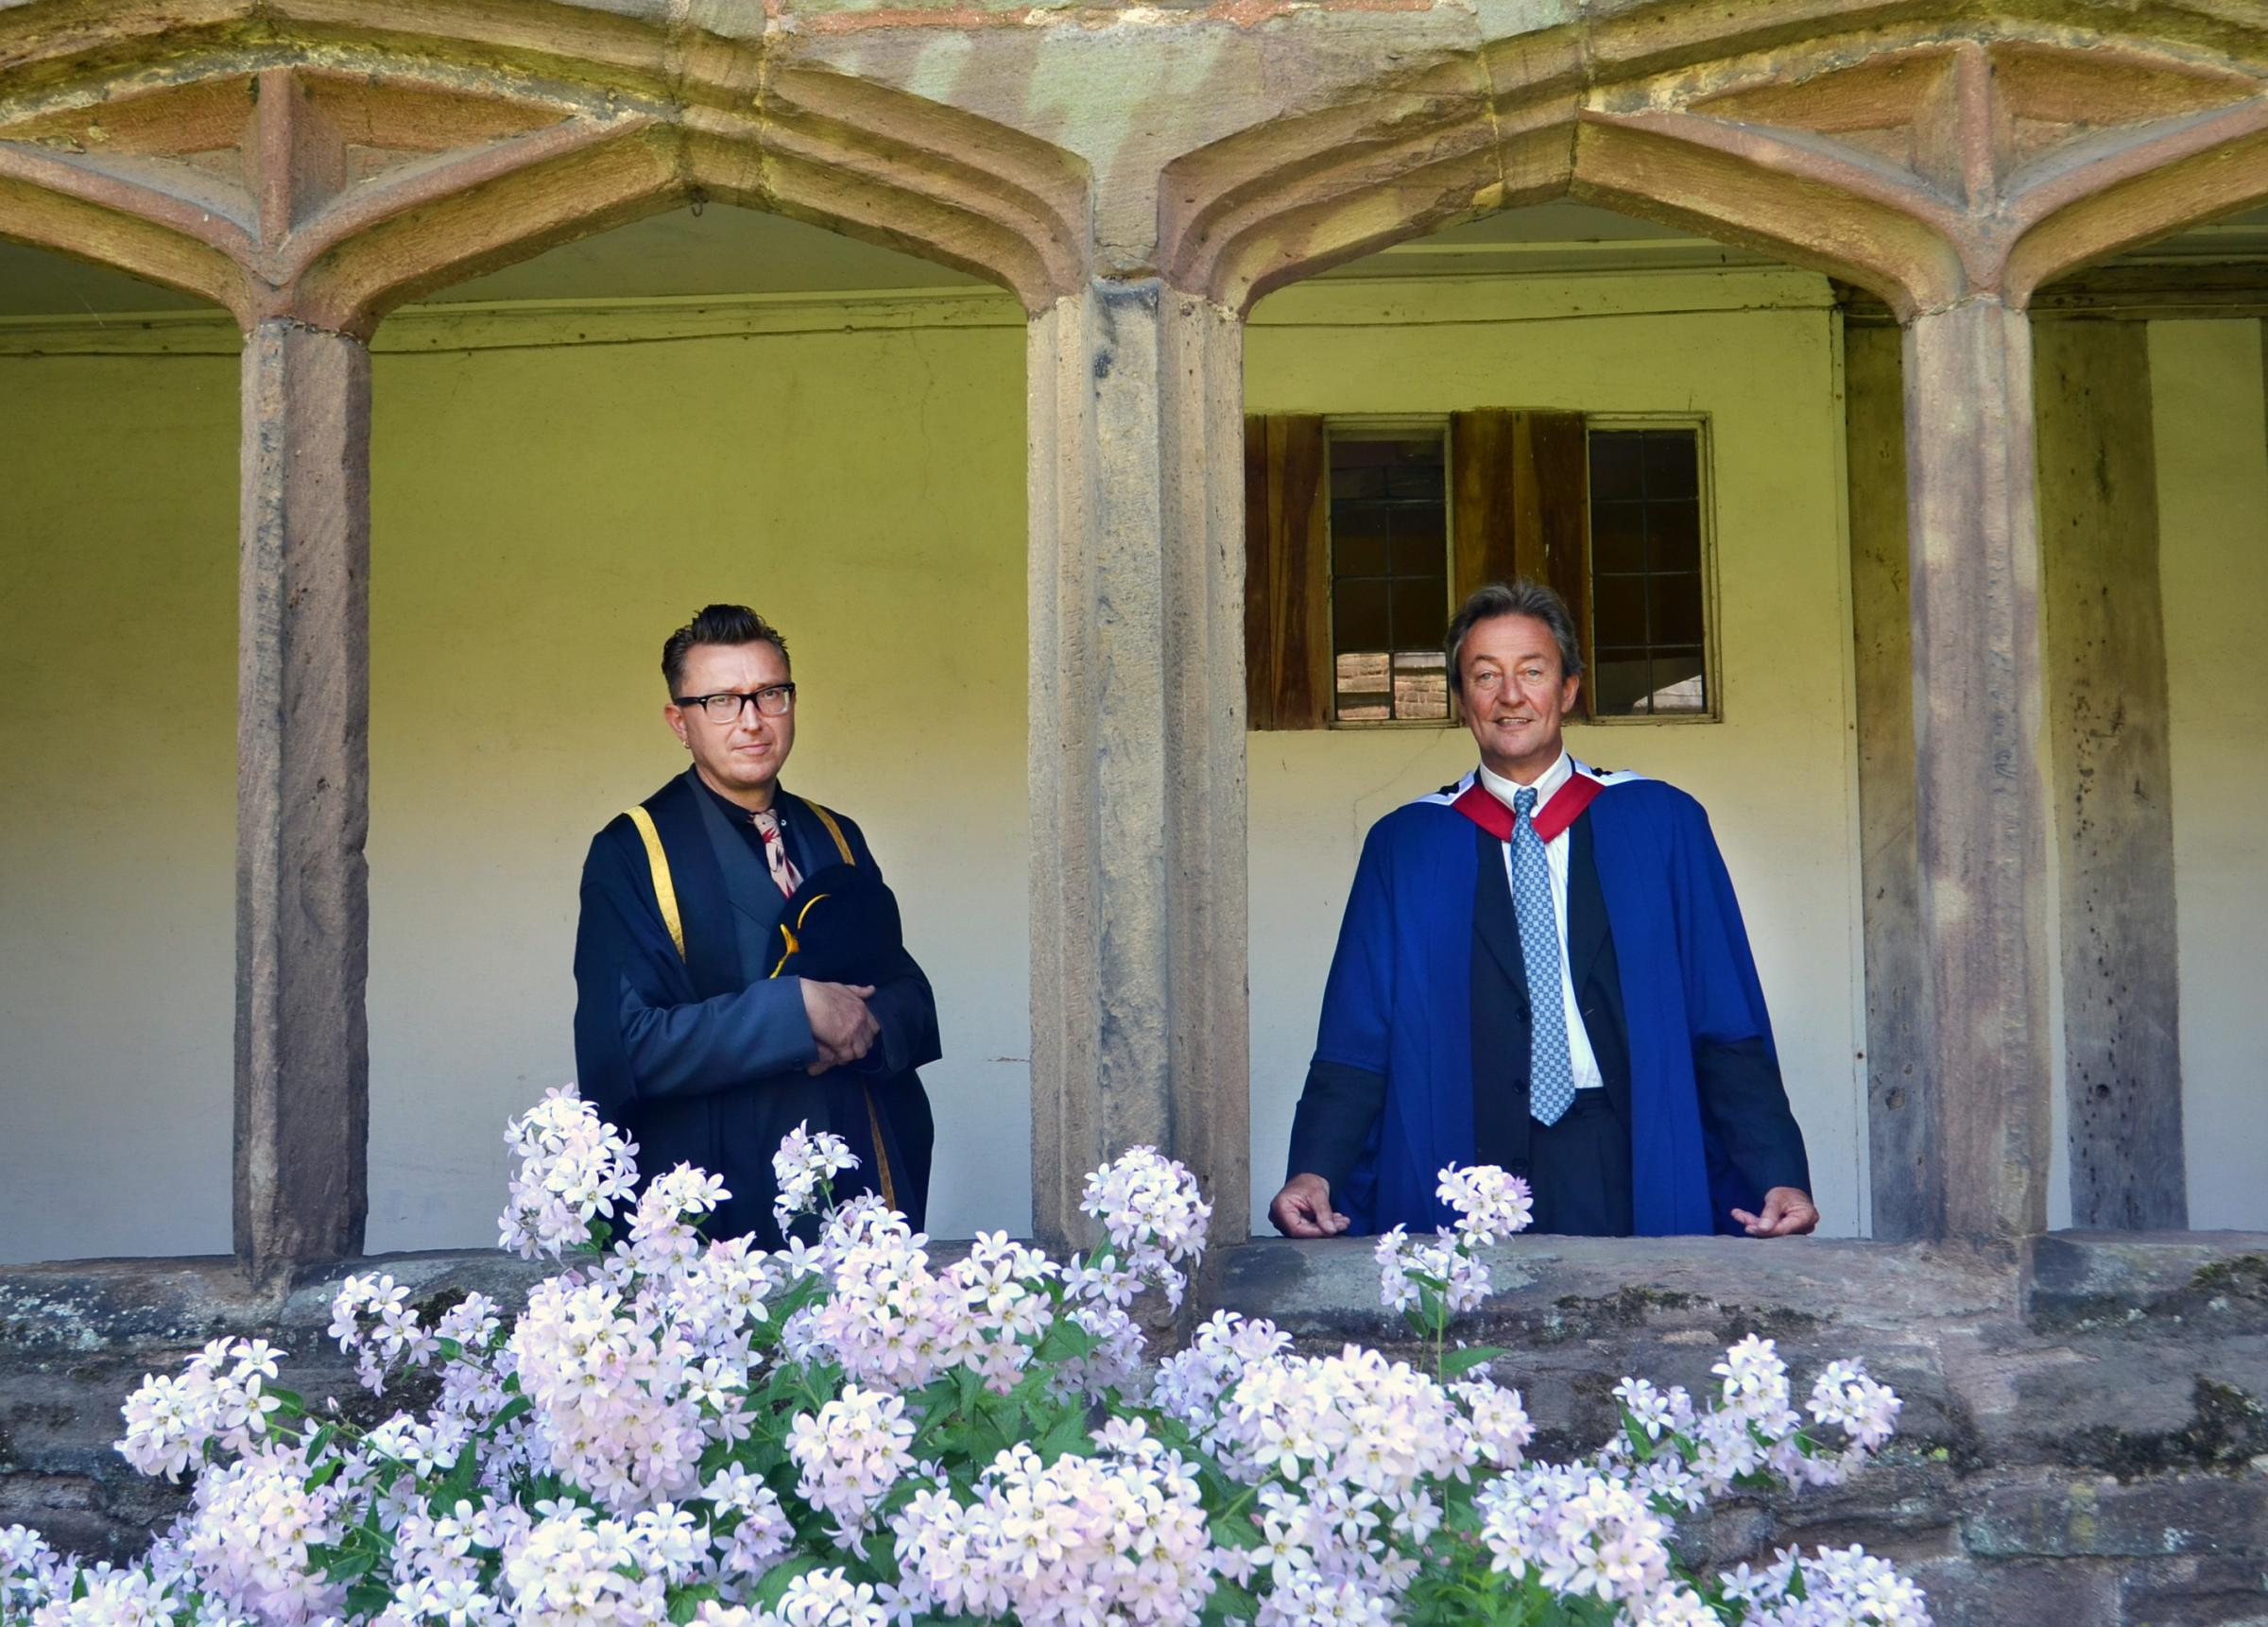 From left: Artist and illustrator Andrew Foster with Hereford College of Arts principal Richard Heatly. (Photo by Dee Montague)